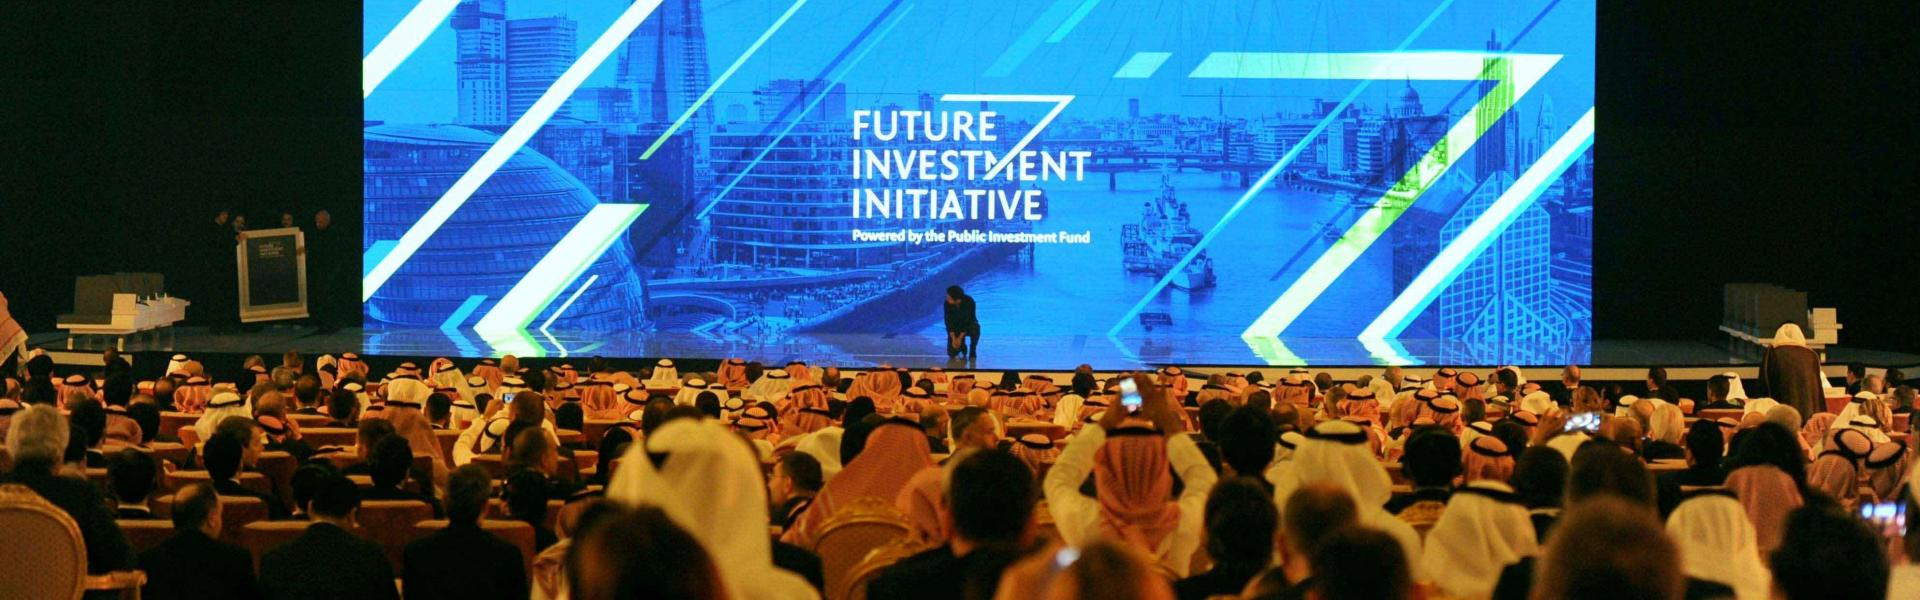 People attend the Future Investment Initiative (FII) conference in Riyadh last year